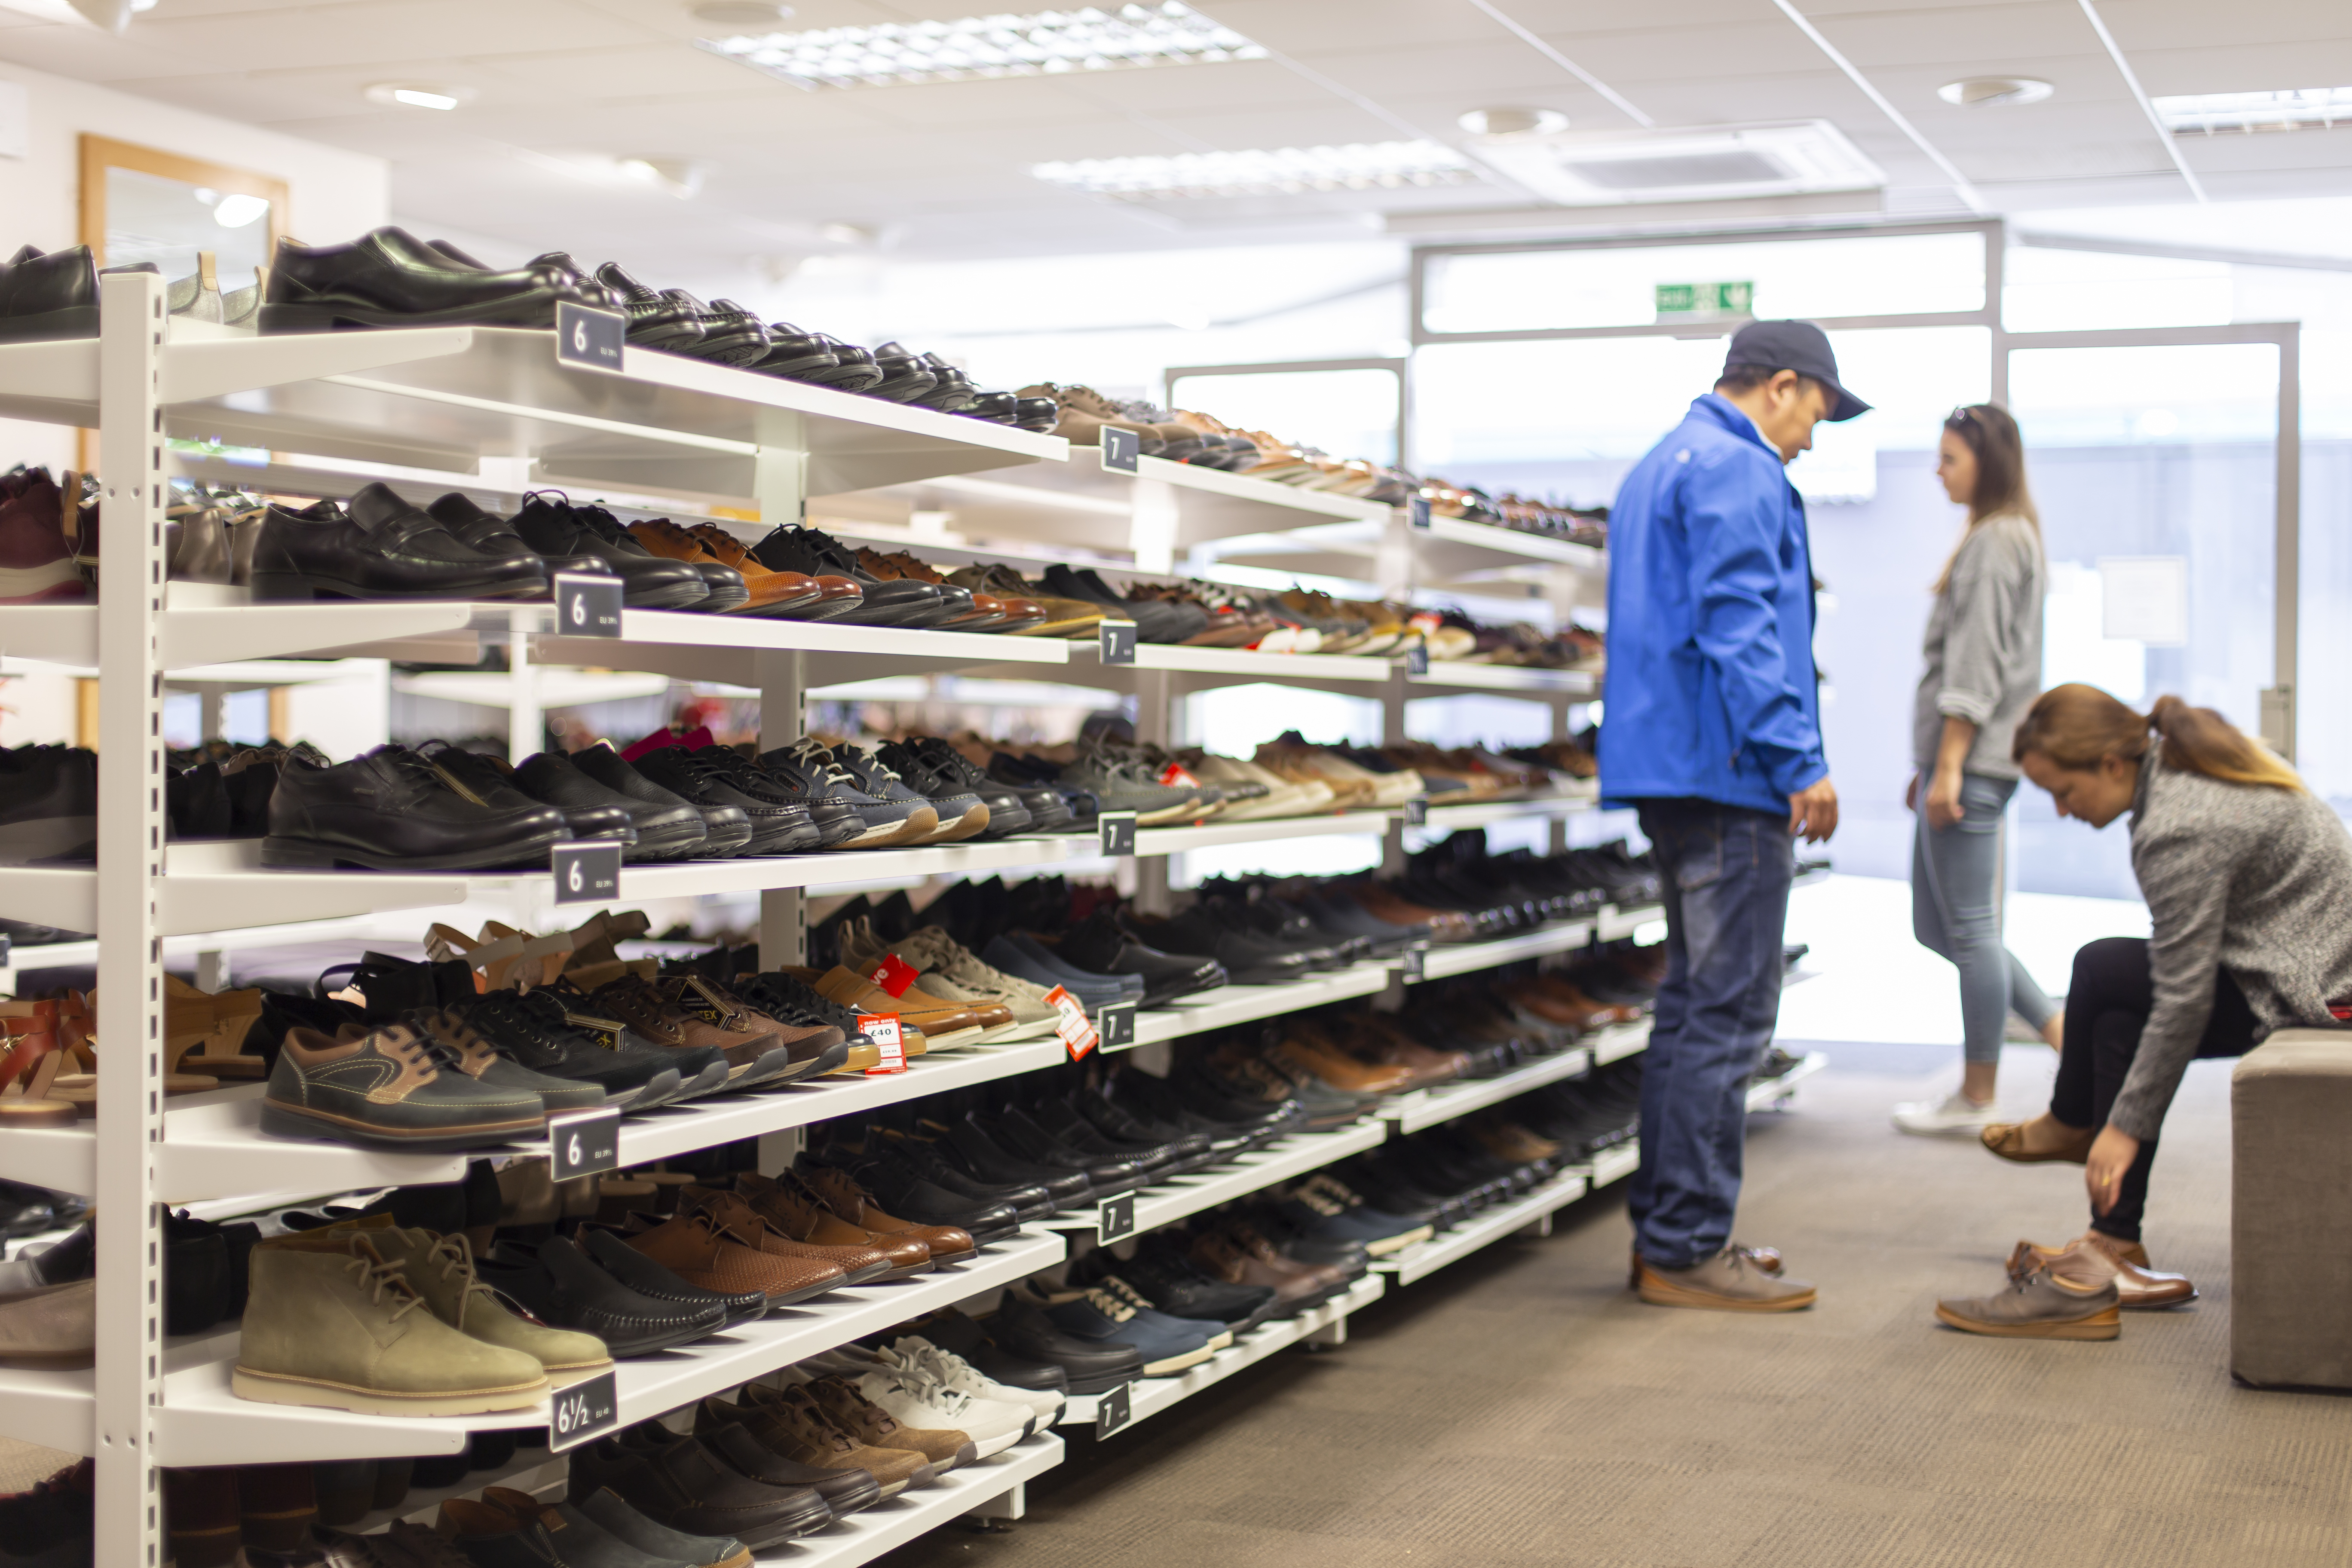 Customers trying on Clarks shoes